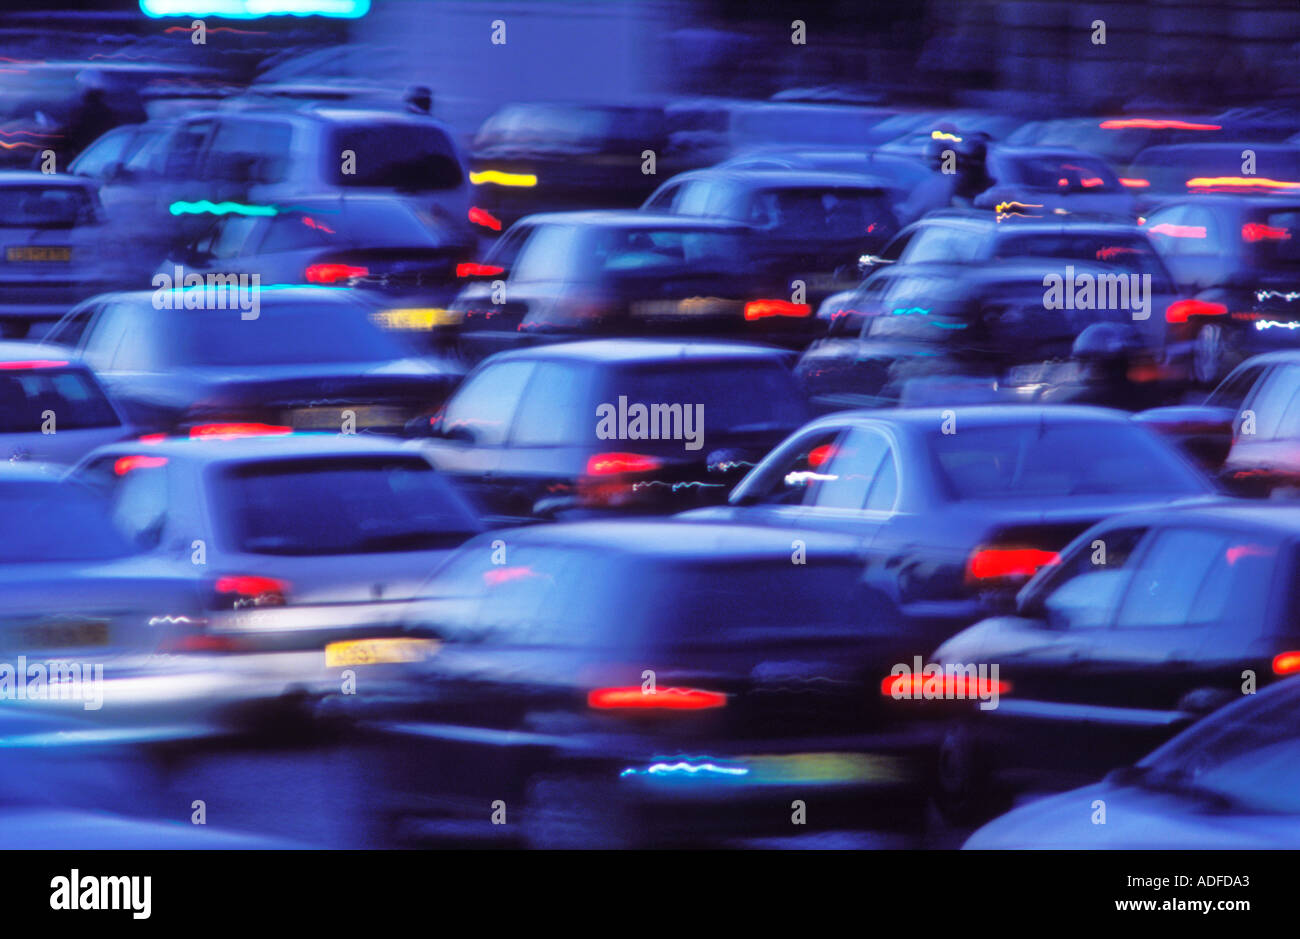 France Paris traffic at night blurred - Stock Image